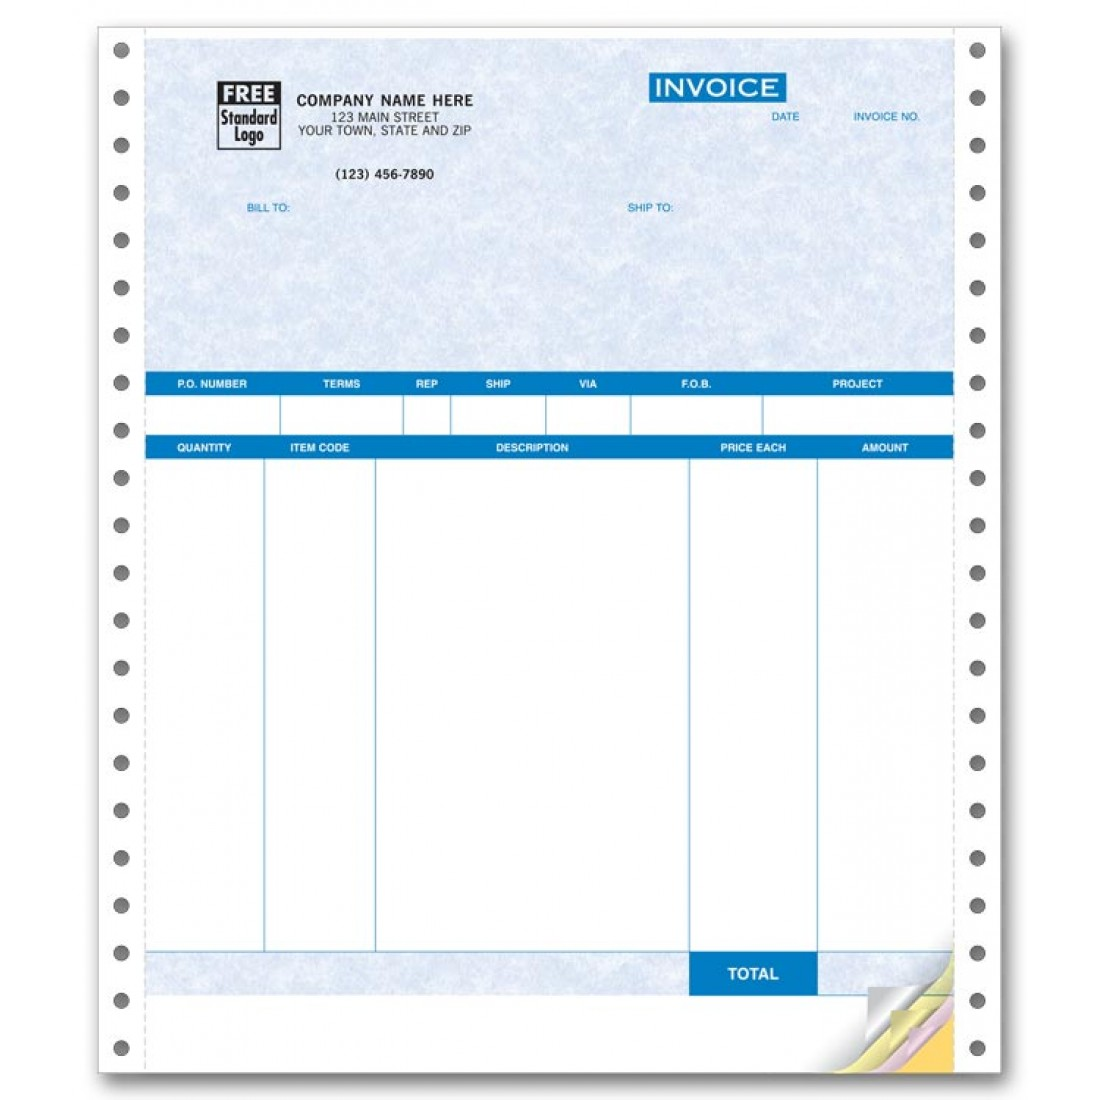 Continuous Product Invoice with Packing List - Parchment compatible with QuickBooks